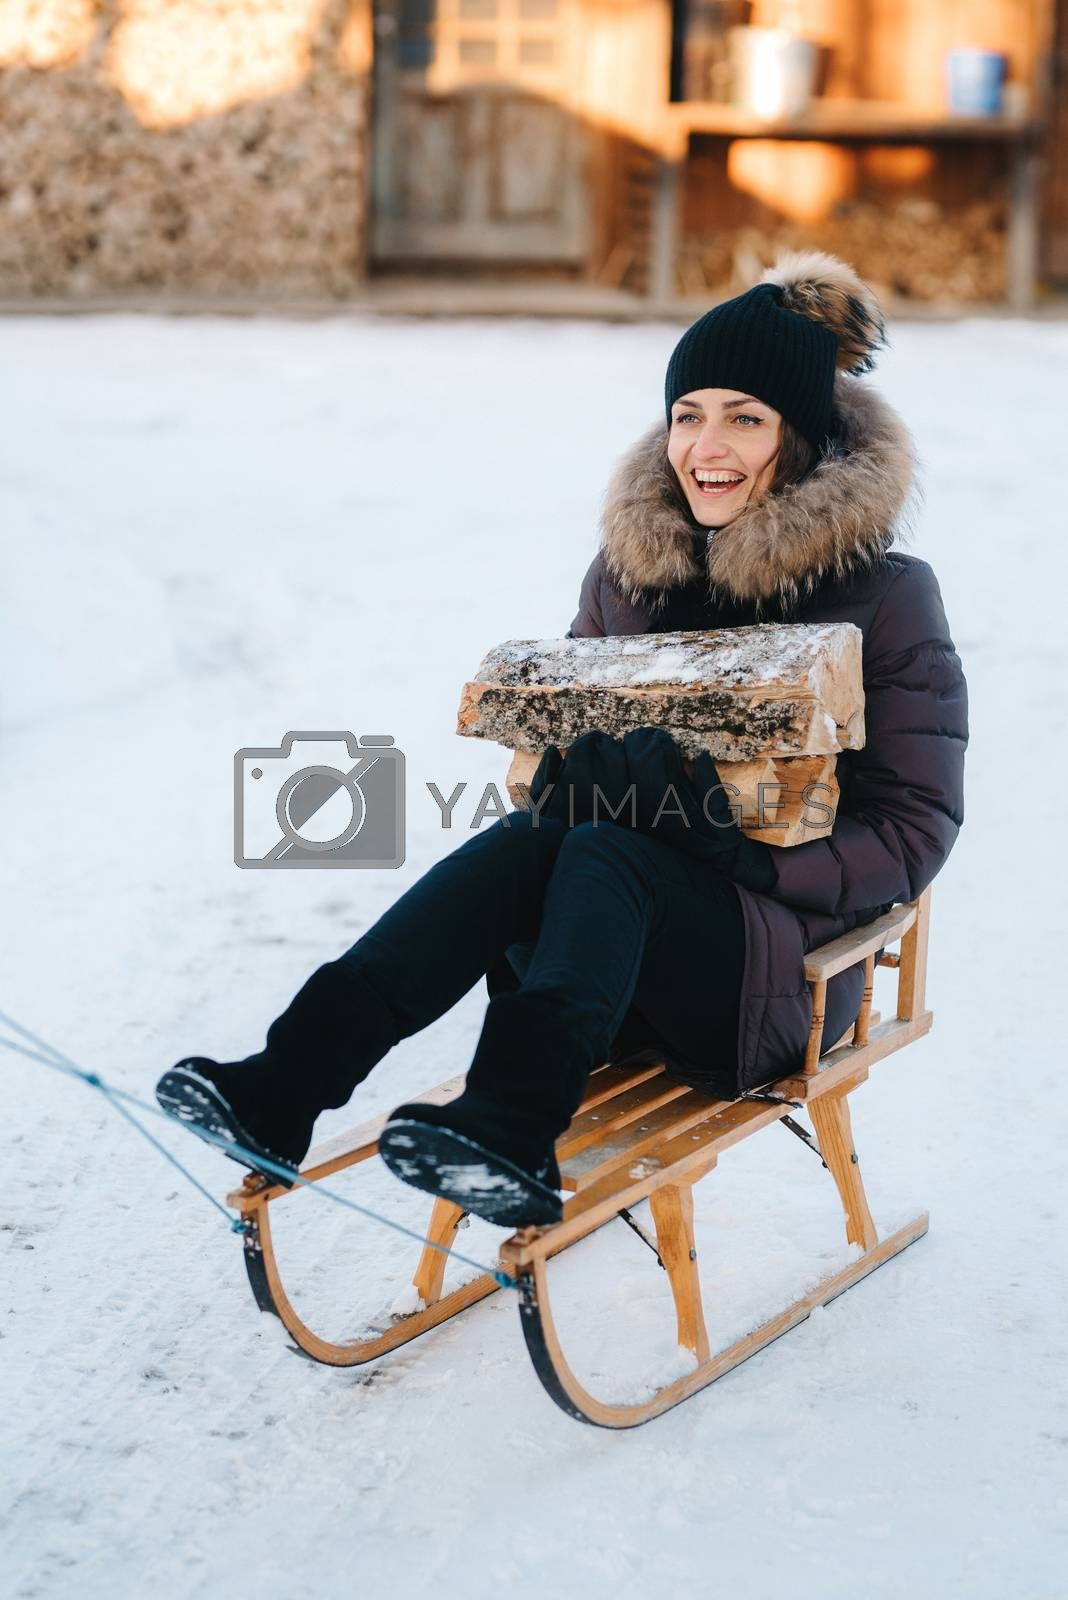 girl sitting in a sled, smiling and holding a wooden log in her hands